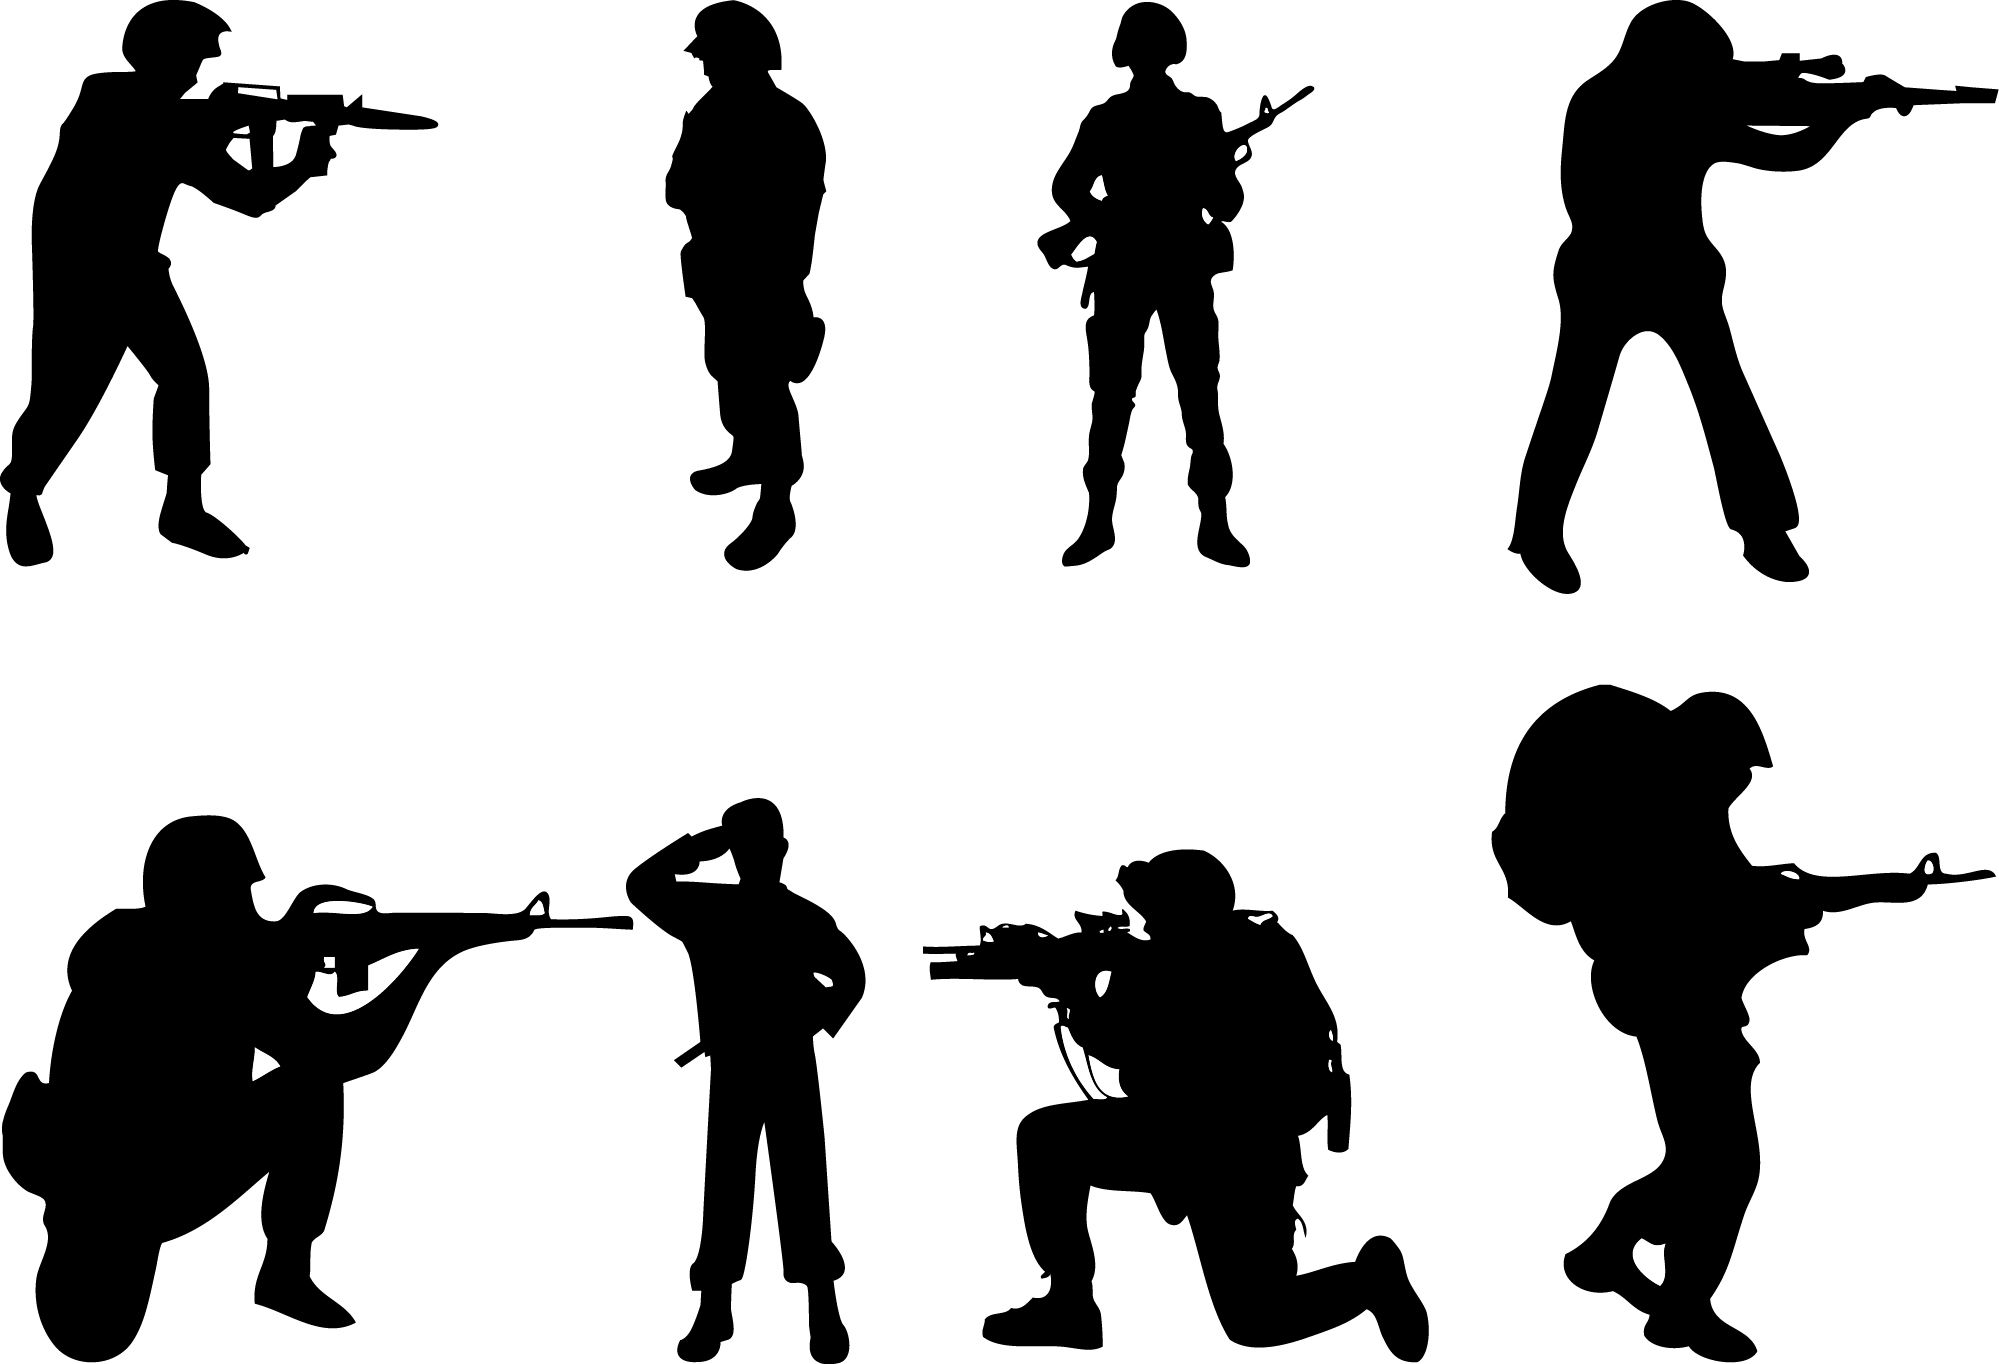 Silhouette Soldier - silhouettevector.net   People Silhouette Vector ...